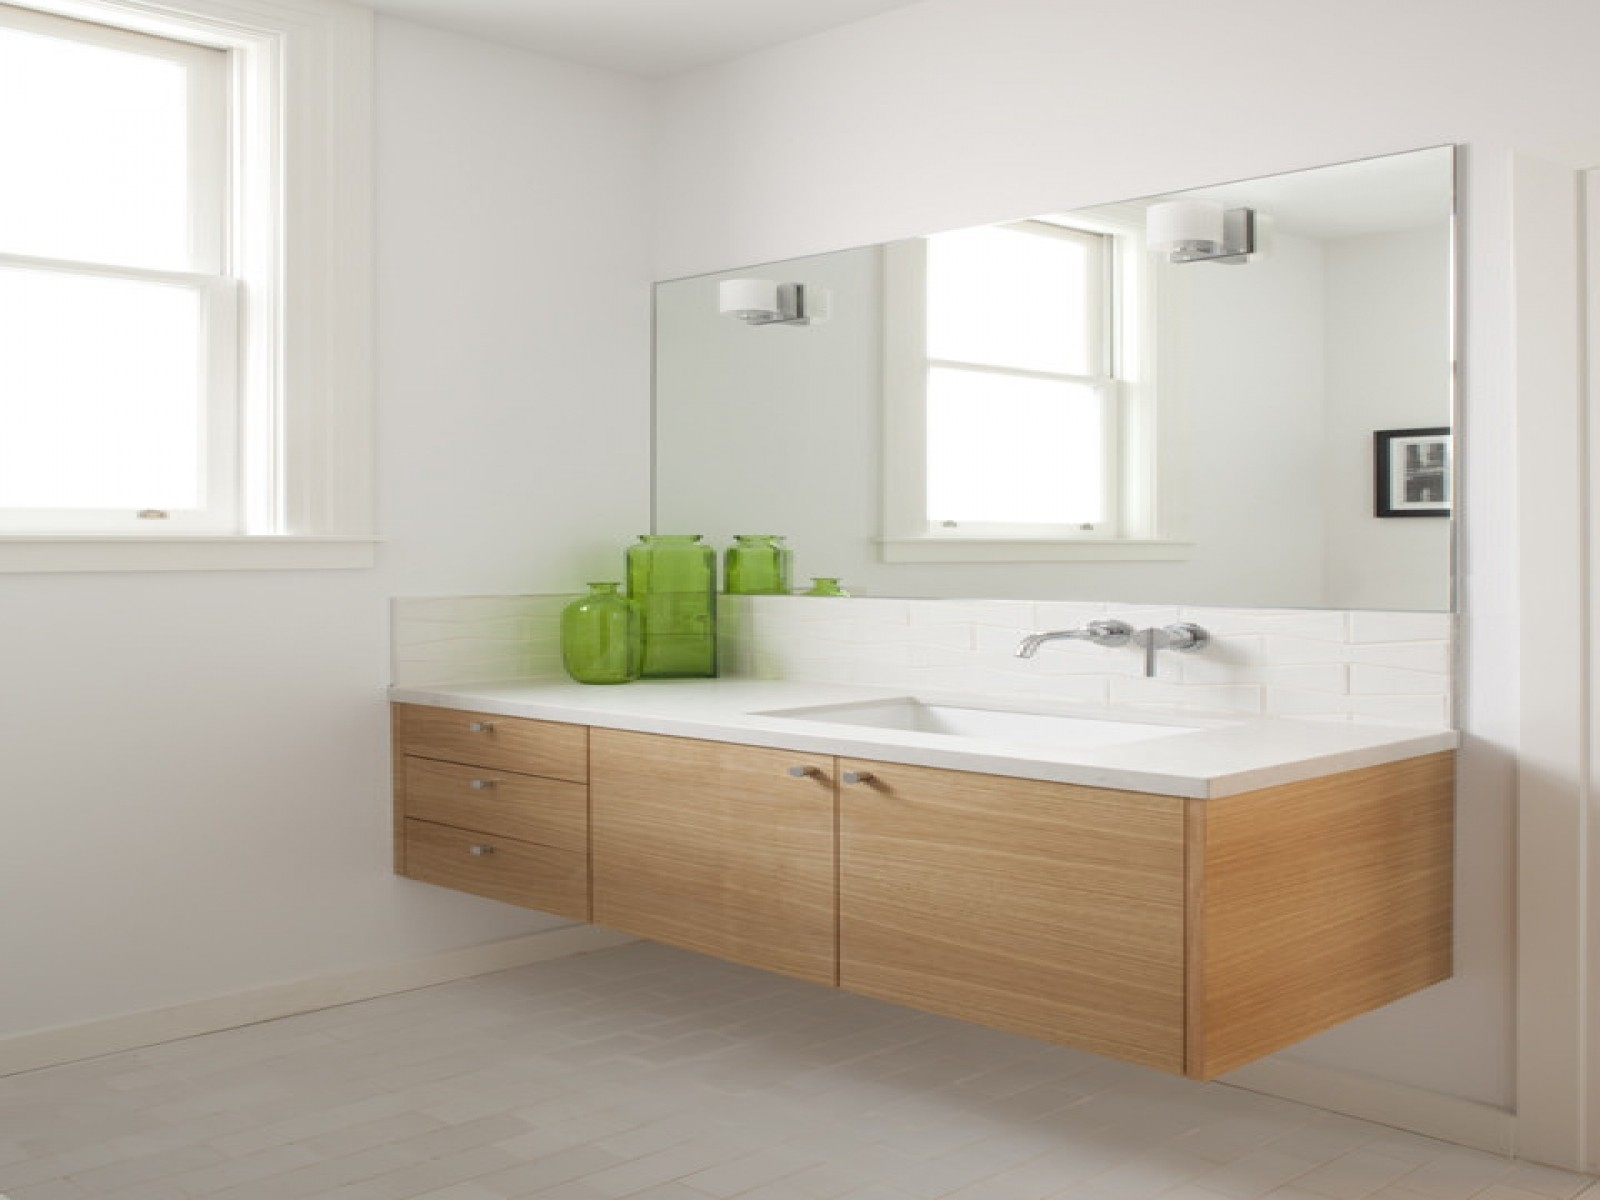 Image of: Floating Bathroom Vanity Contemporary